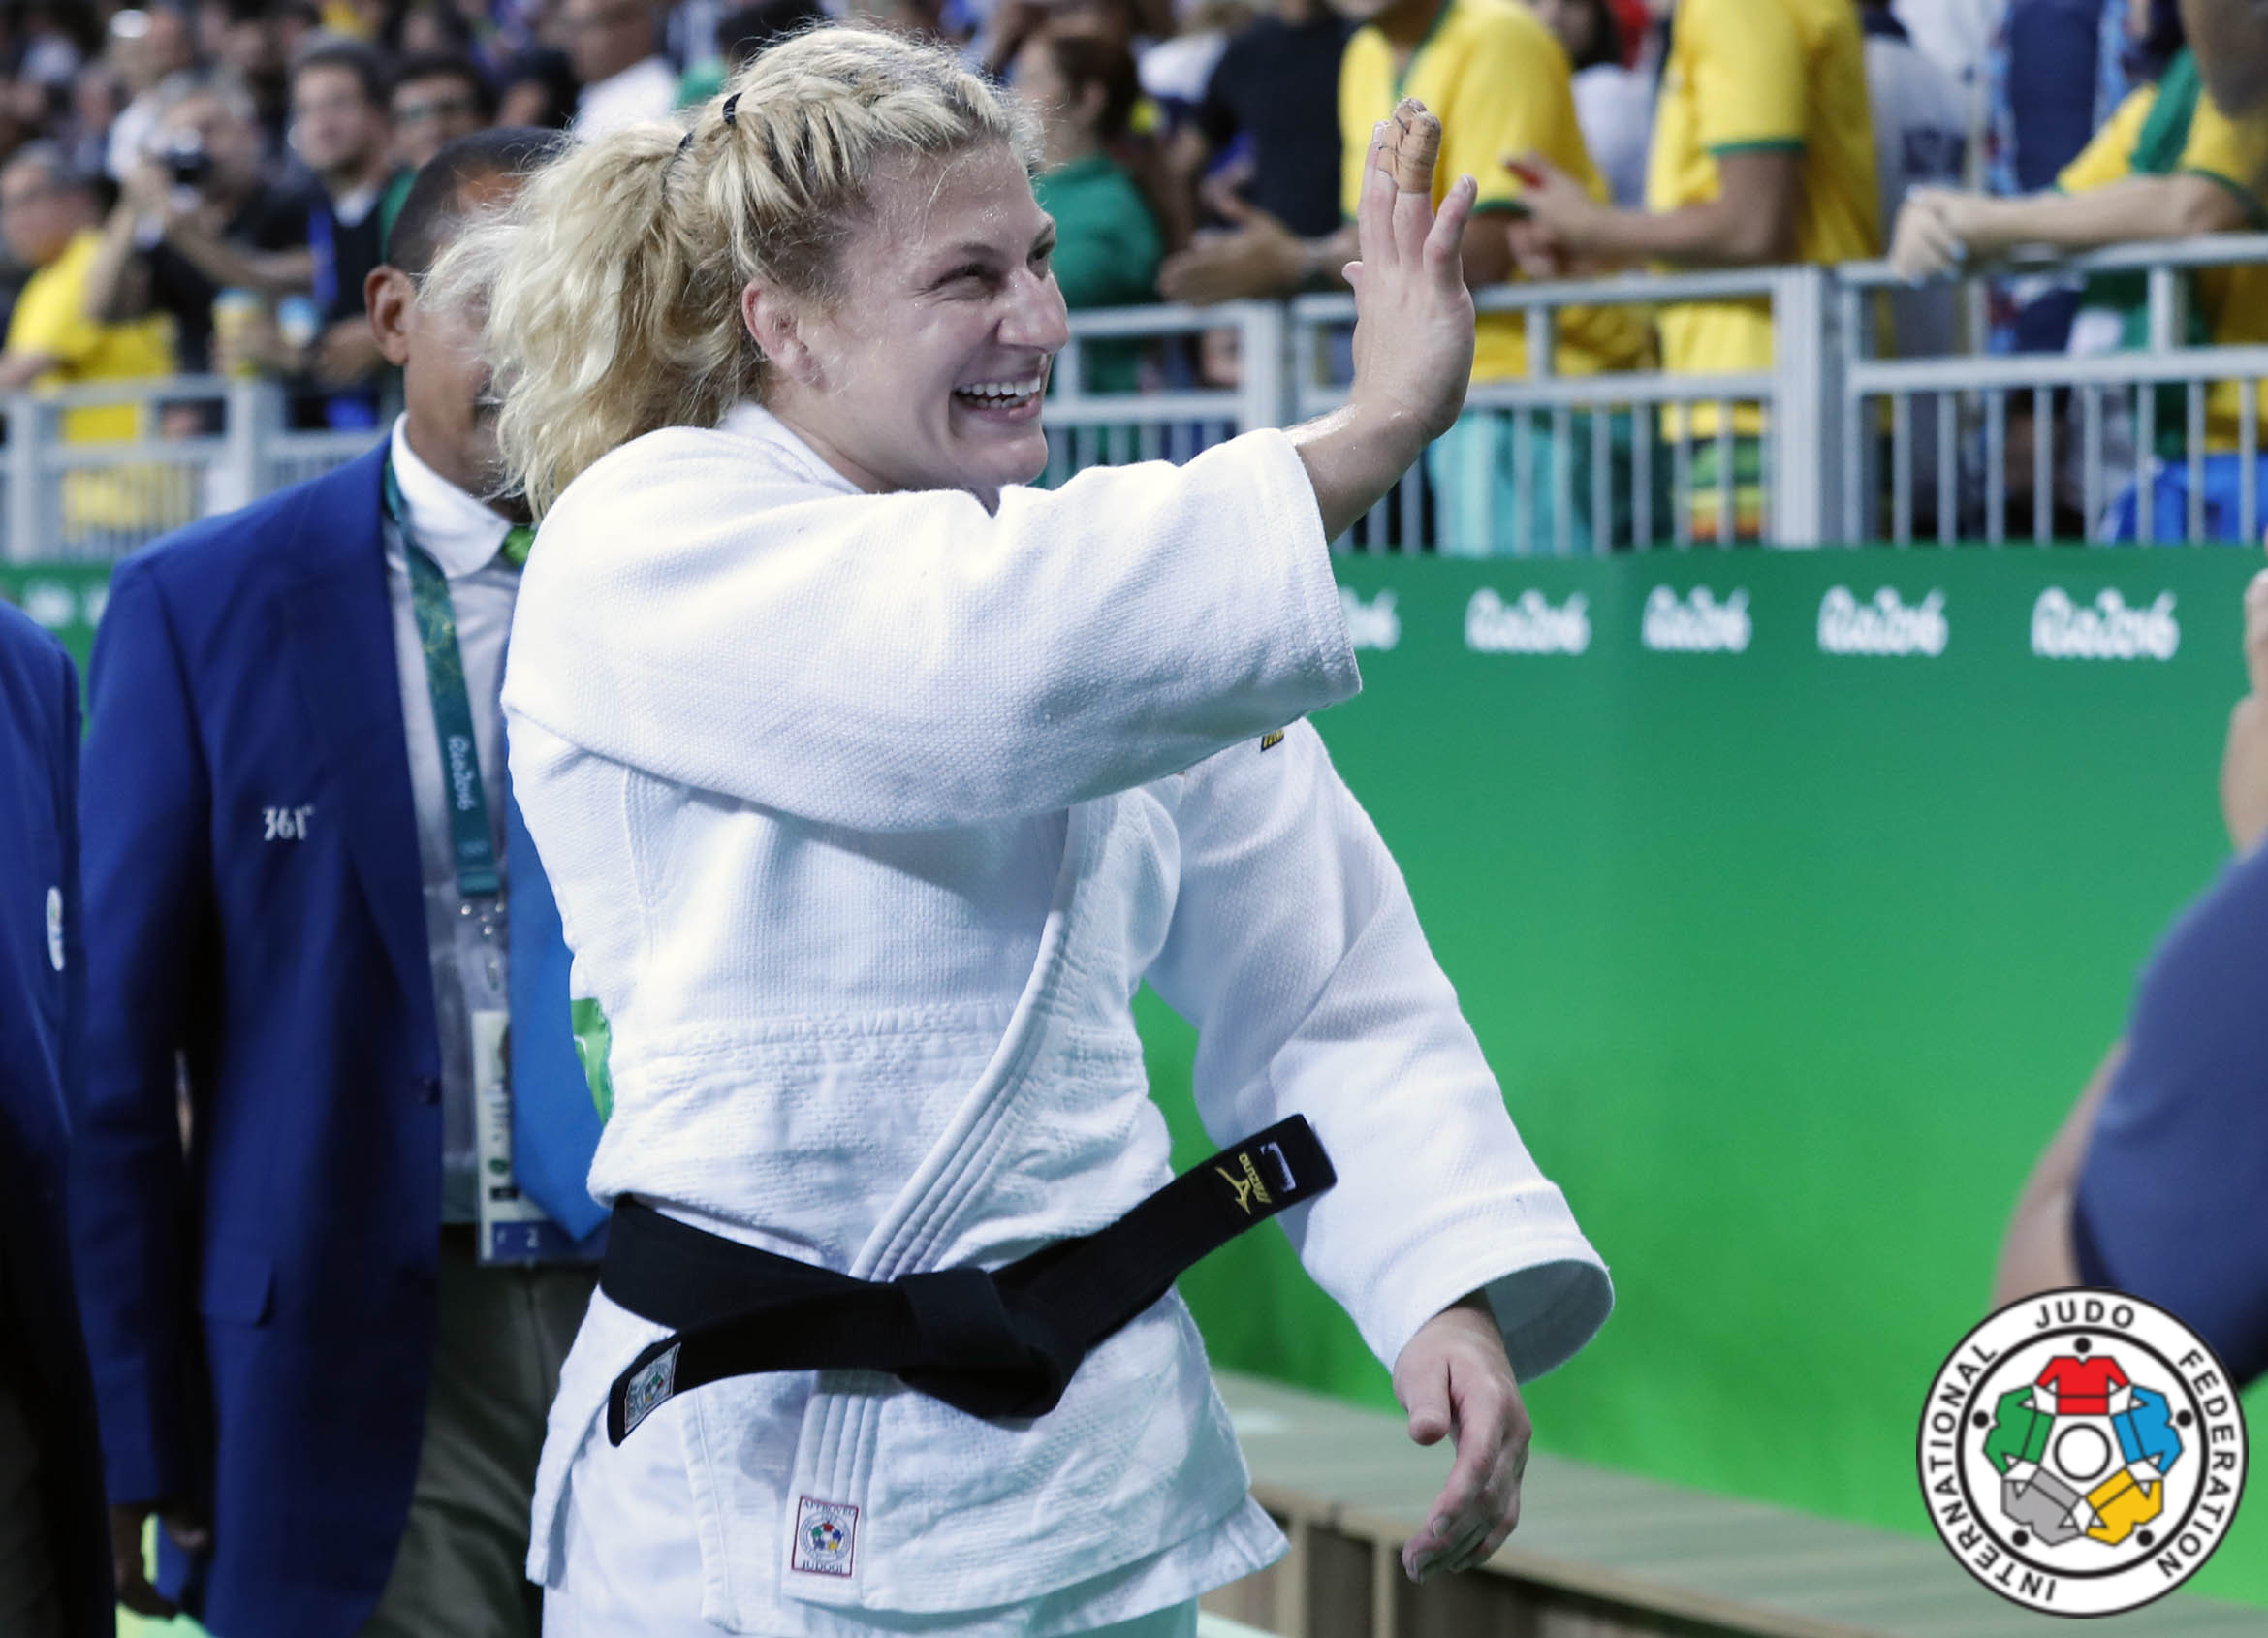 20160811_IJF_78_final_ HARRISON, Kayla (USA) (9)